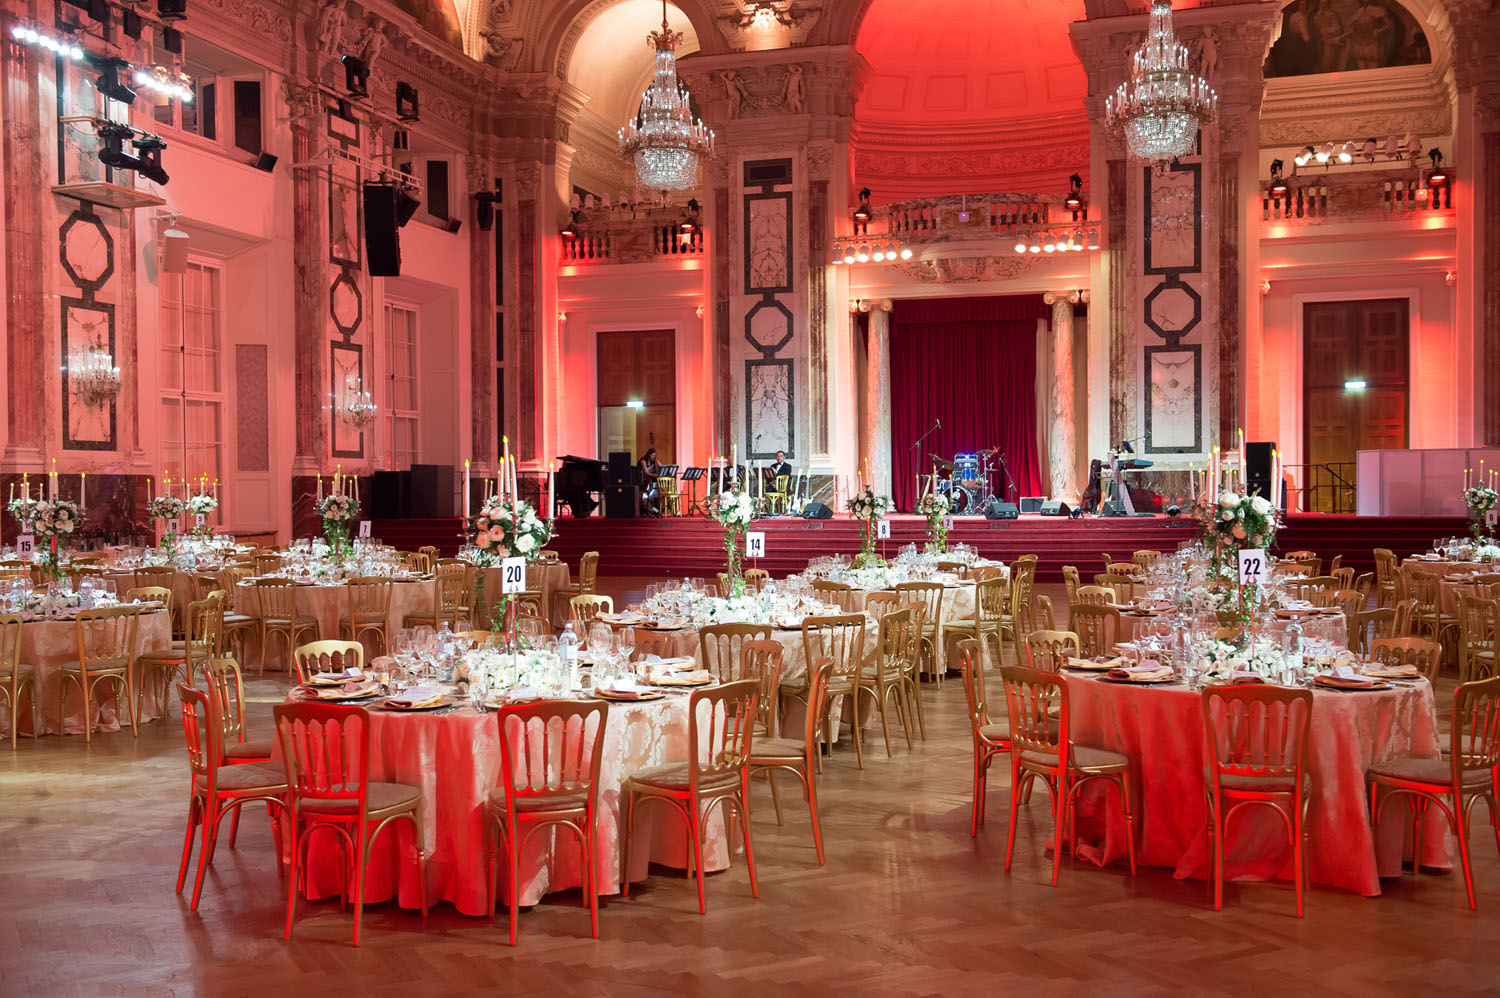 Fujitsu 155 20160911 1 - Gala Dinner At The Hofburg Palace Vienna